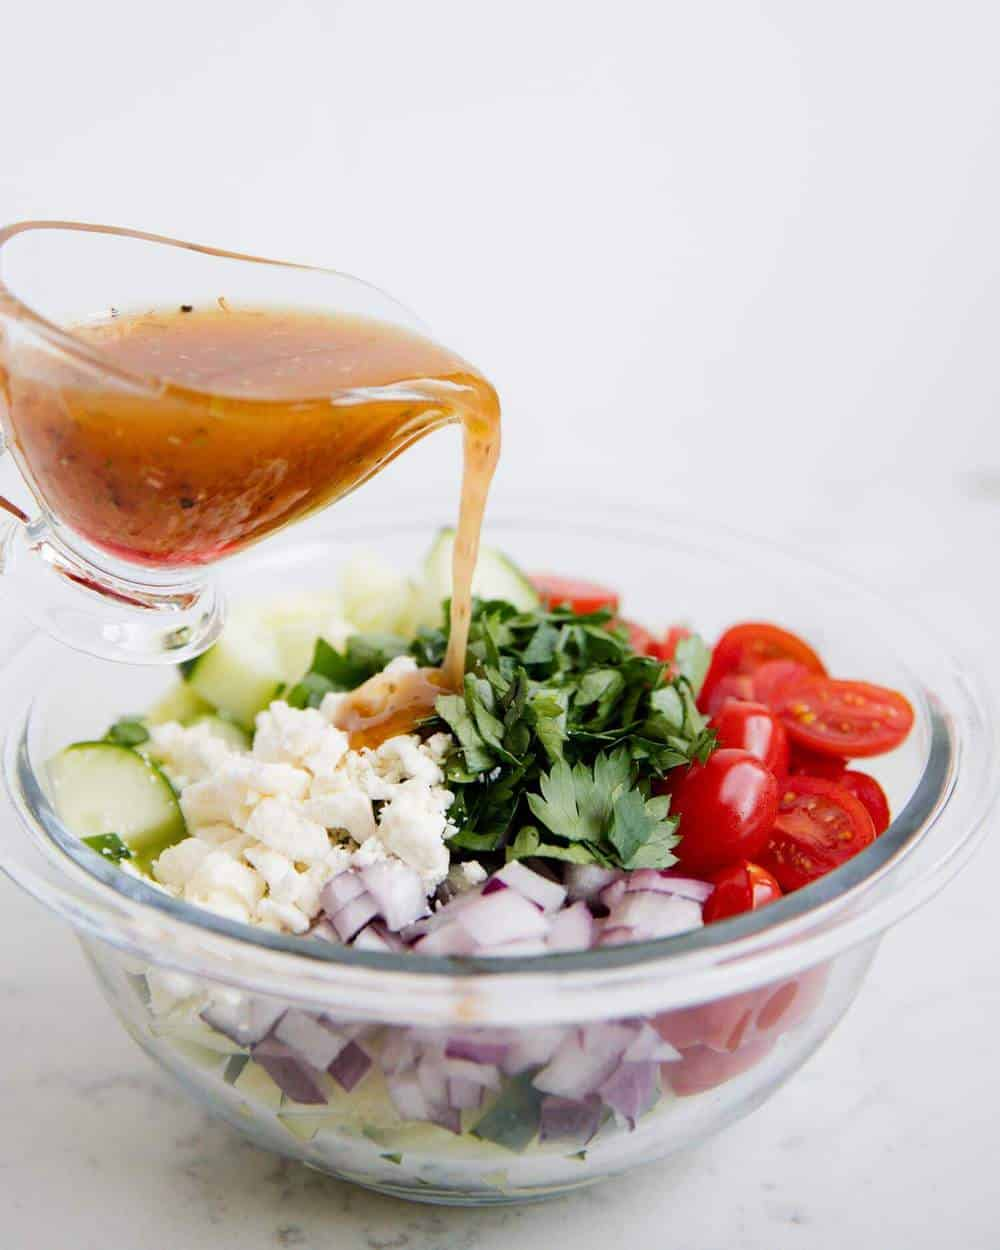 pouring vinaigrette over bowl of ingredients for tomato cucumber salad